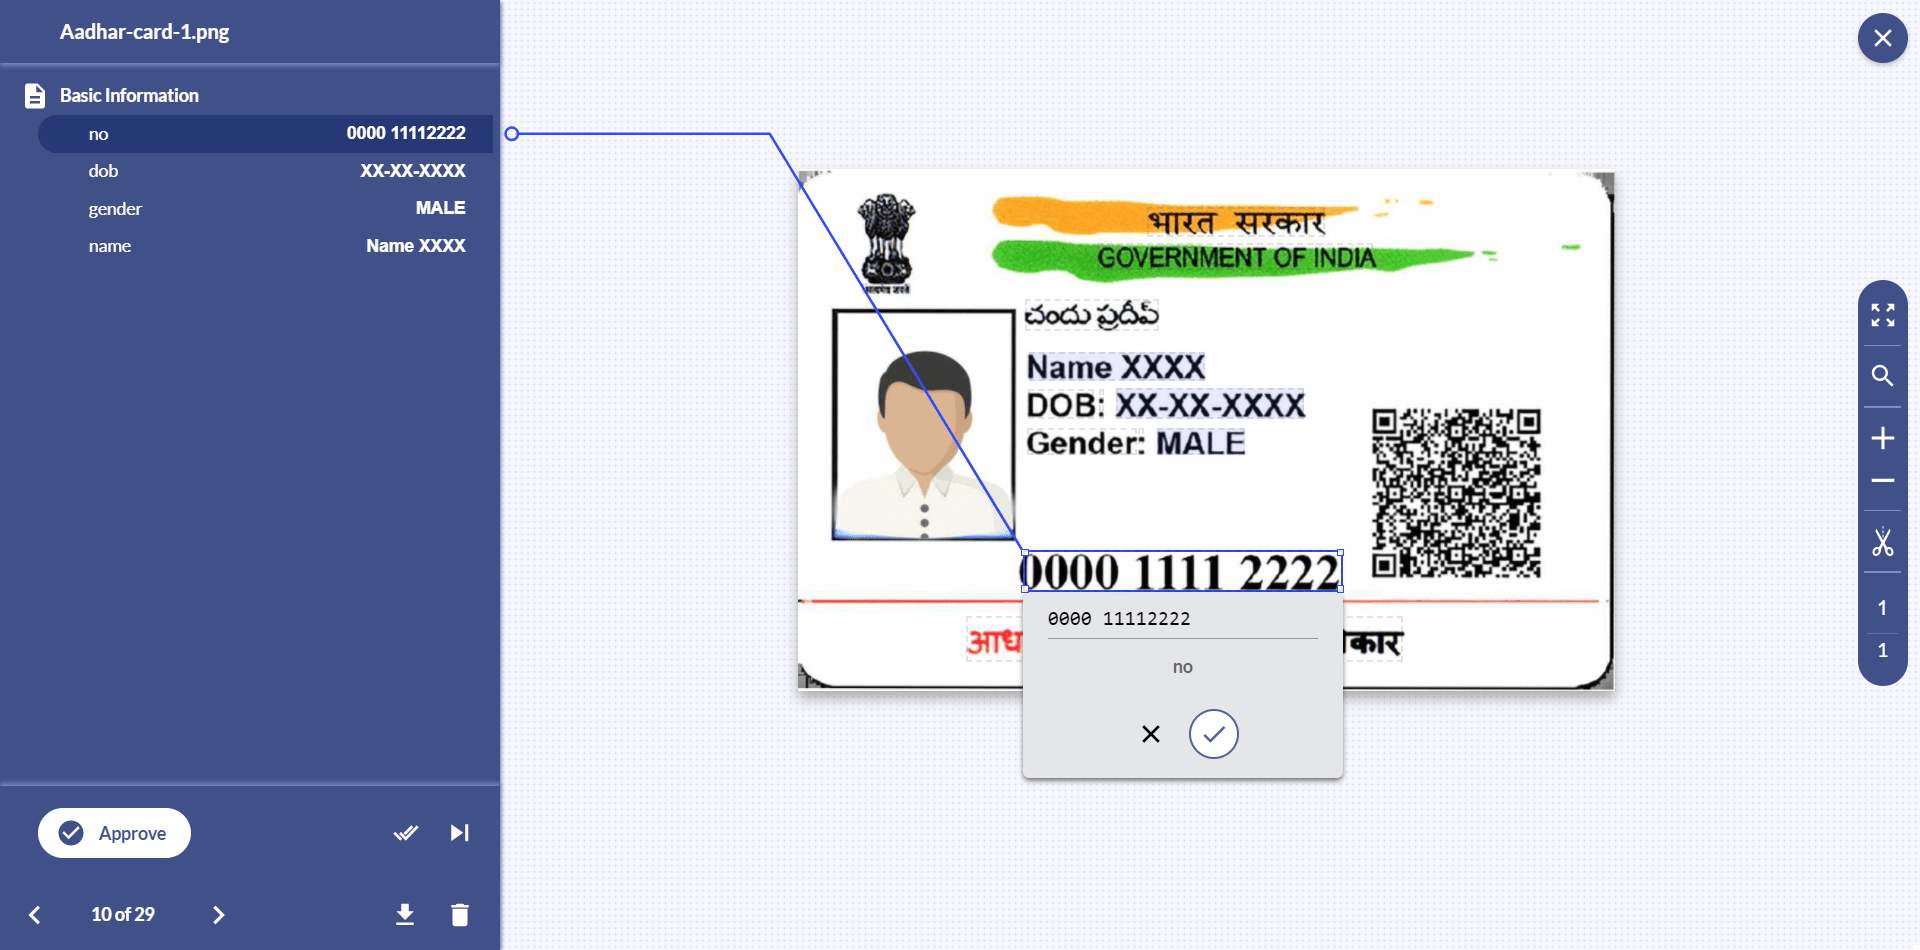 With Docsumo, free up your essential resources while verifying Aadhaar details and detecting frauds with 98% accuracy. Aadhaar card details are verified for incoherent data points and tested against Government database.